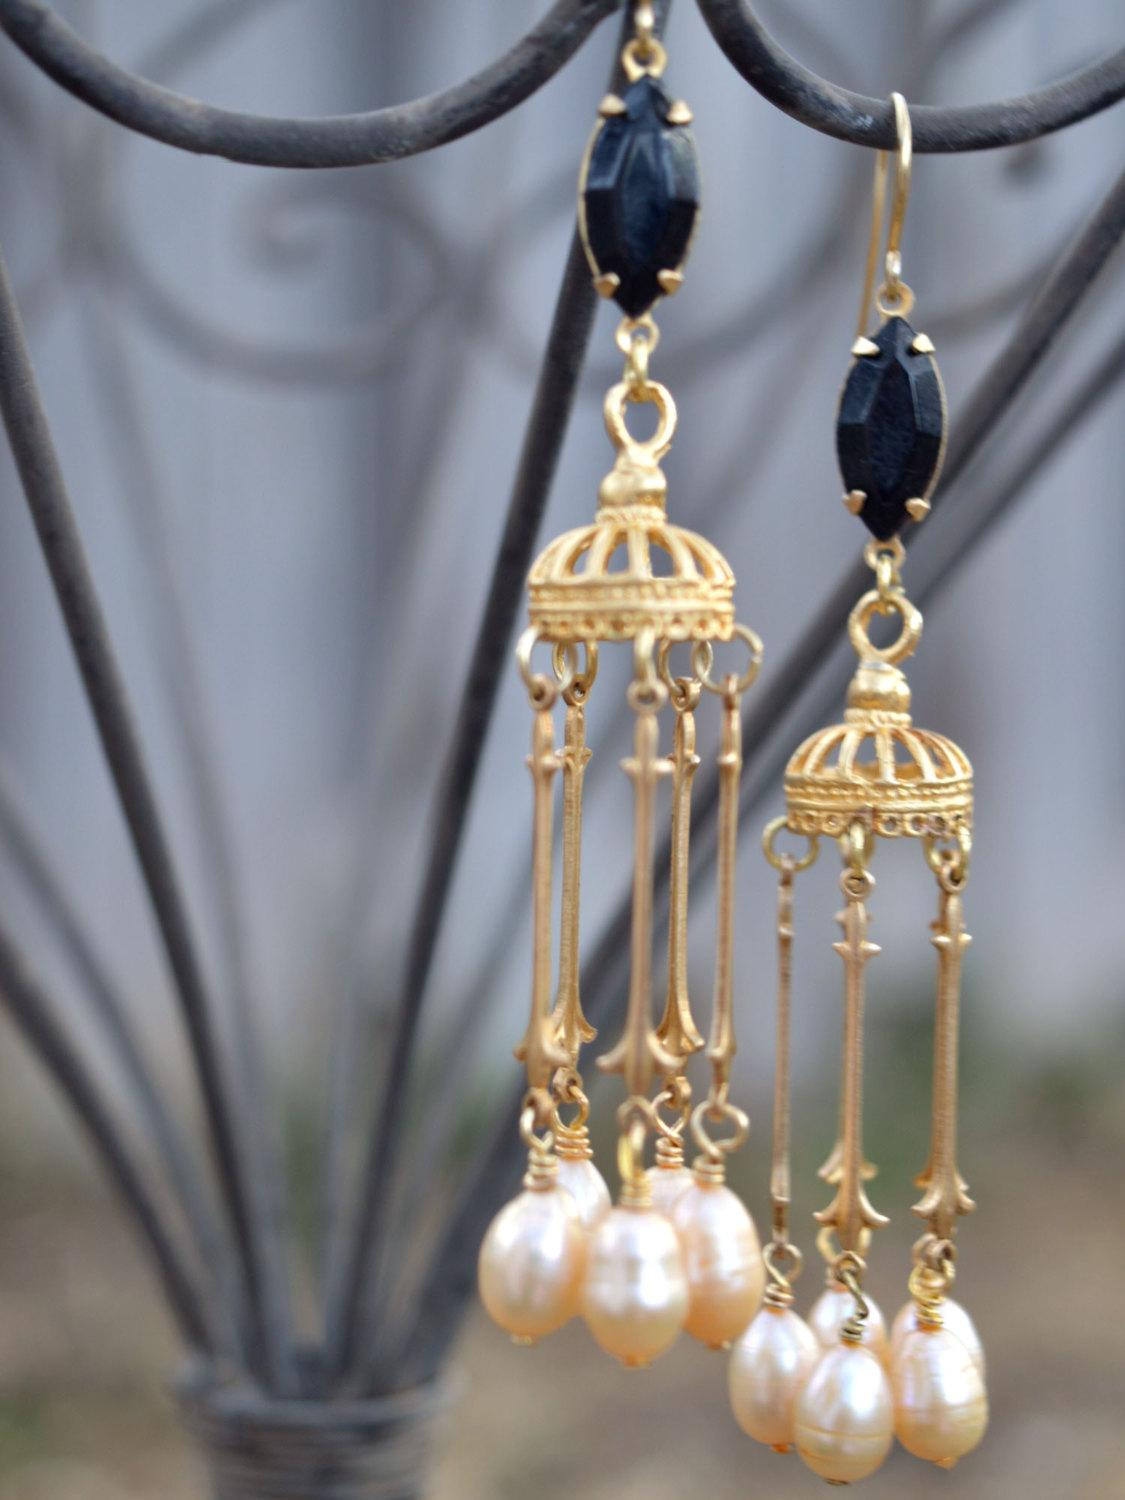 Bohemian bride dangle earrings in gold, black, and ivory.